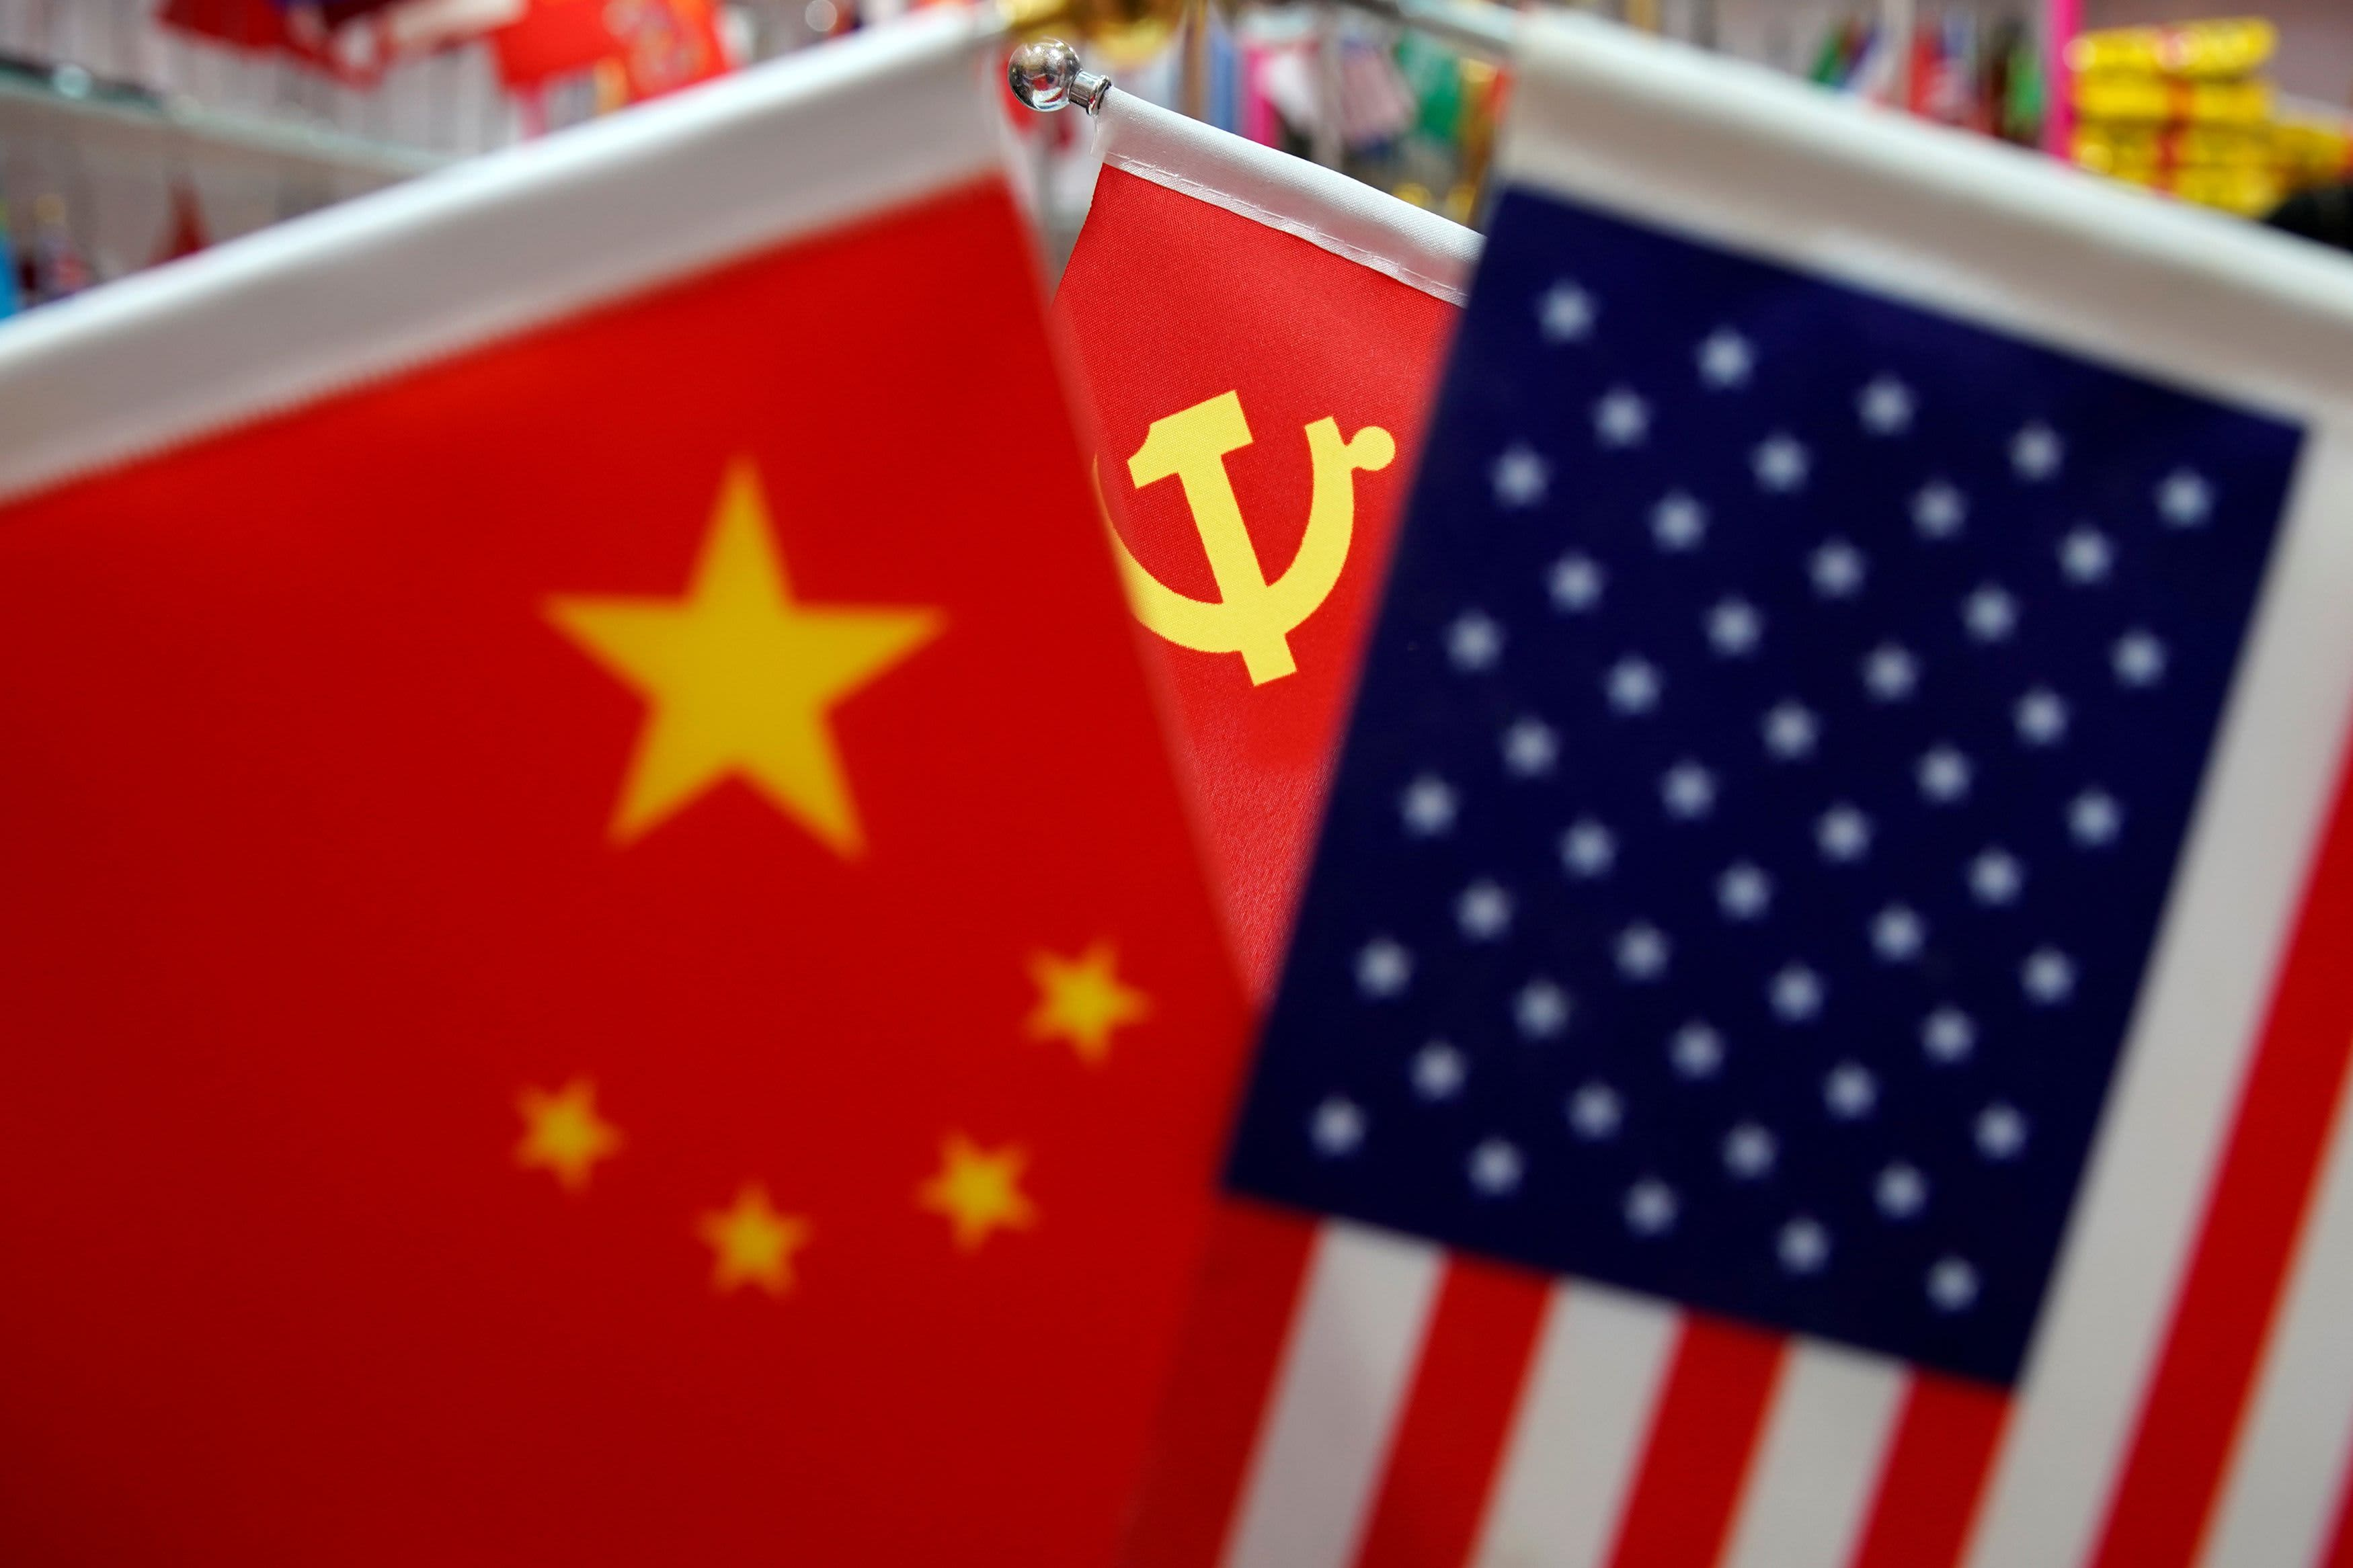 Chinese Foreign Minister Takes Firm Tone, Calls for 'Non-Interference' Between China and the U.S. – NBC4 Washington